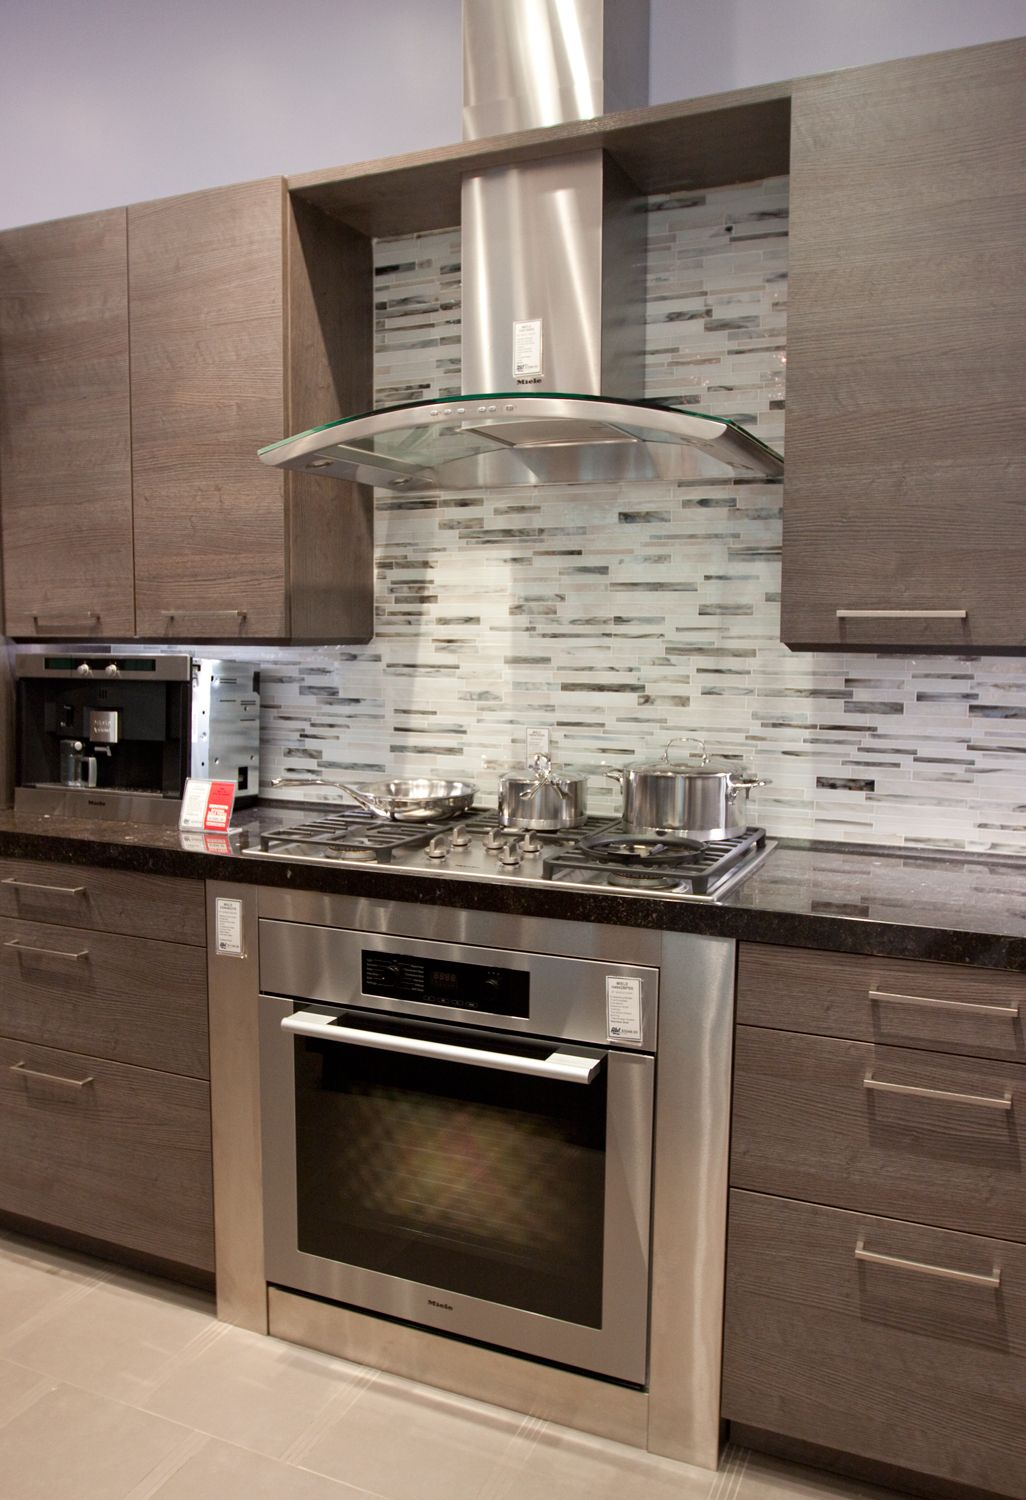 Cocina Modernas Pequeñas Kitchen Glass Chimney Hood Gray Backsplash Kitchen Ideas